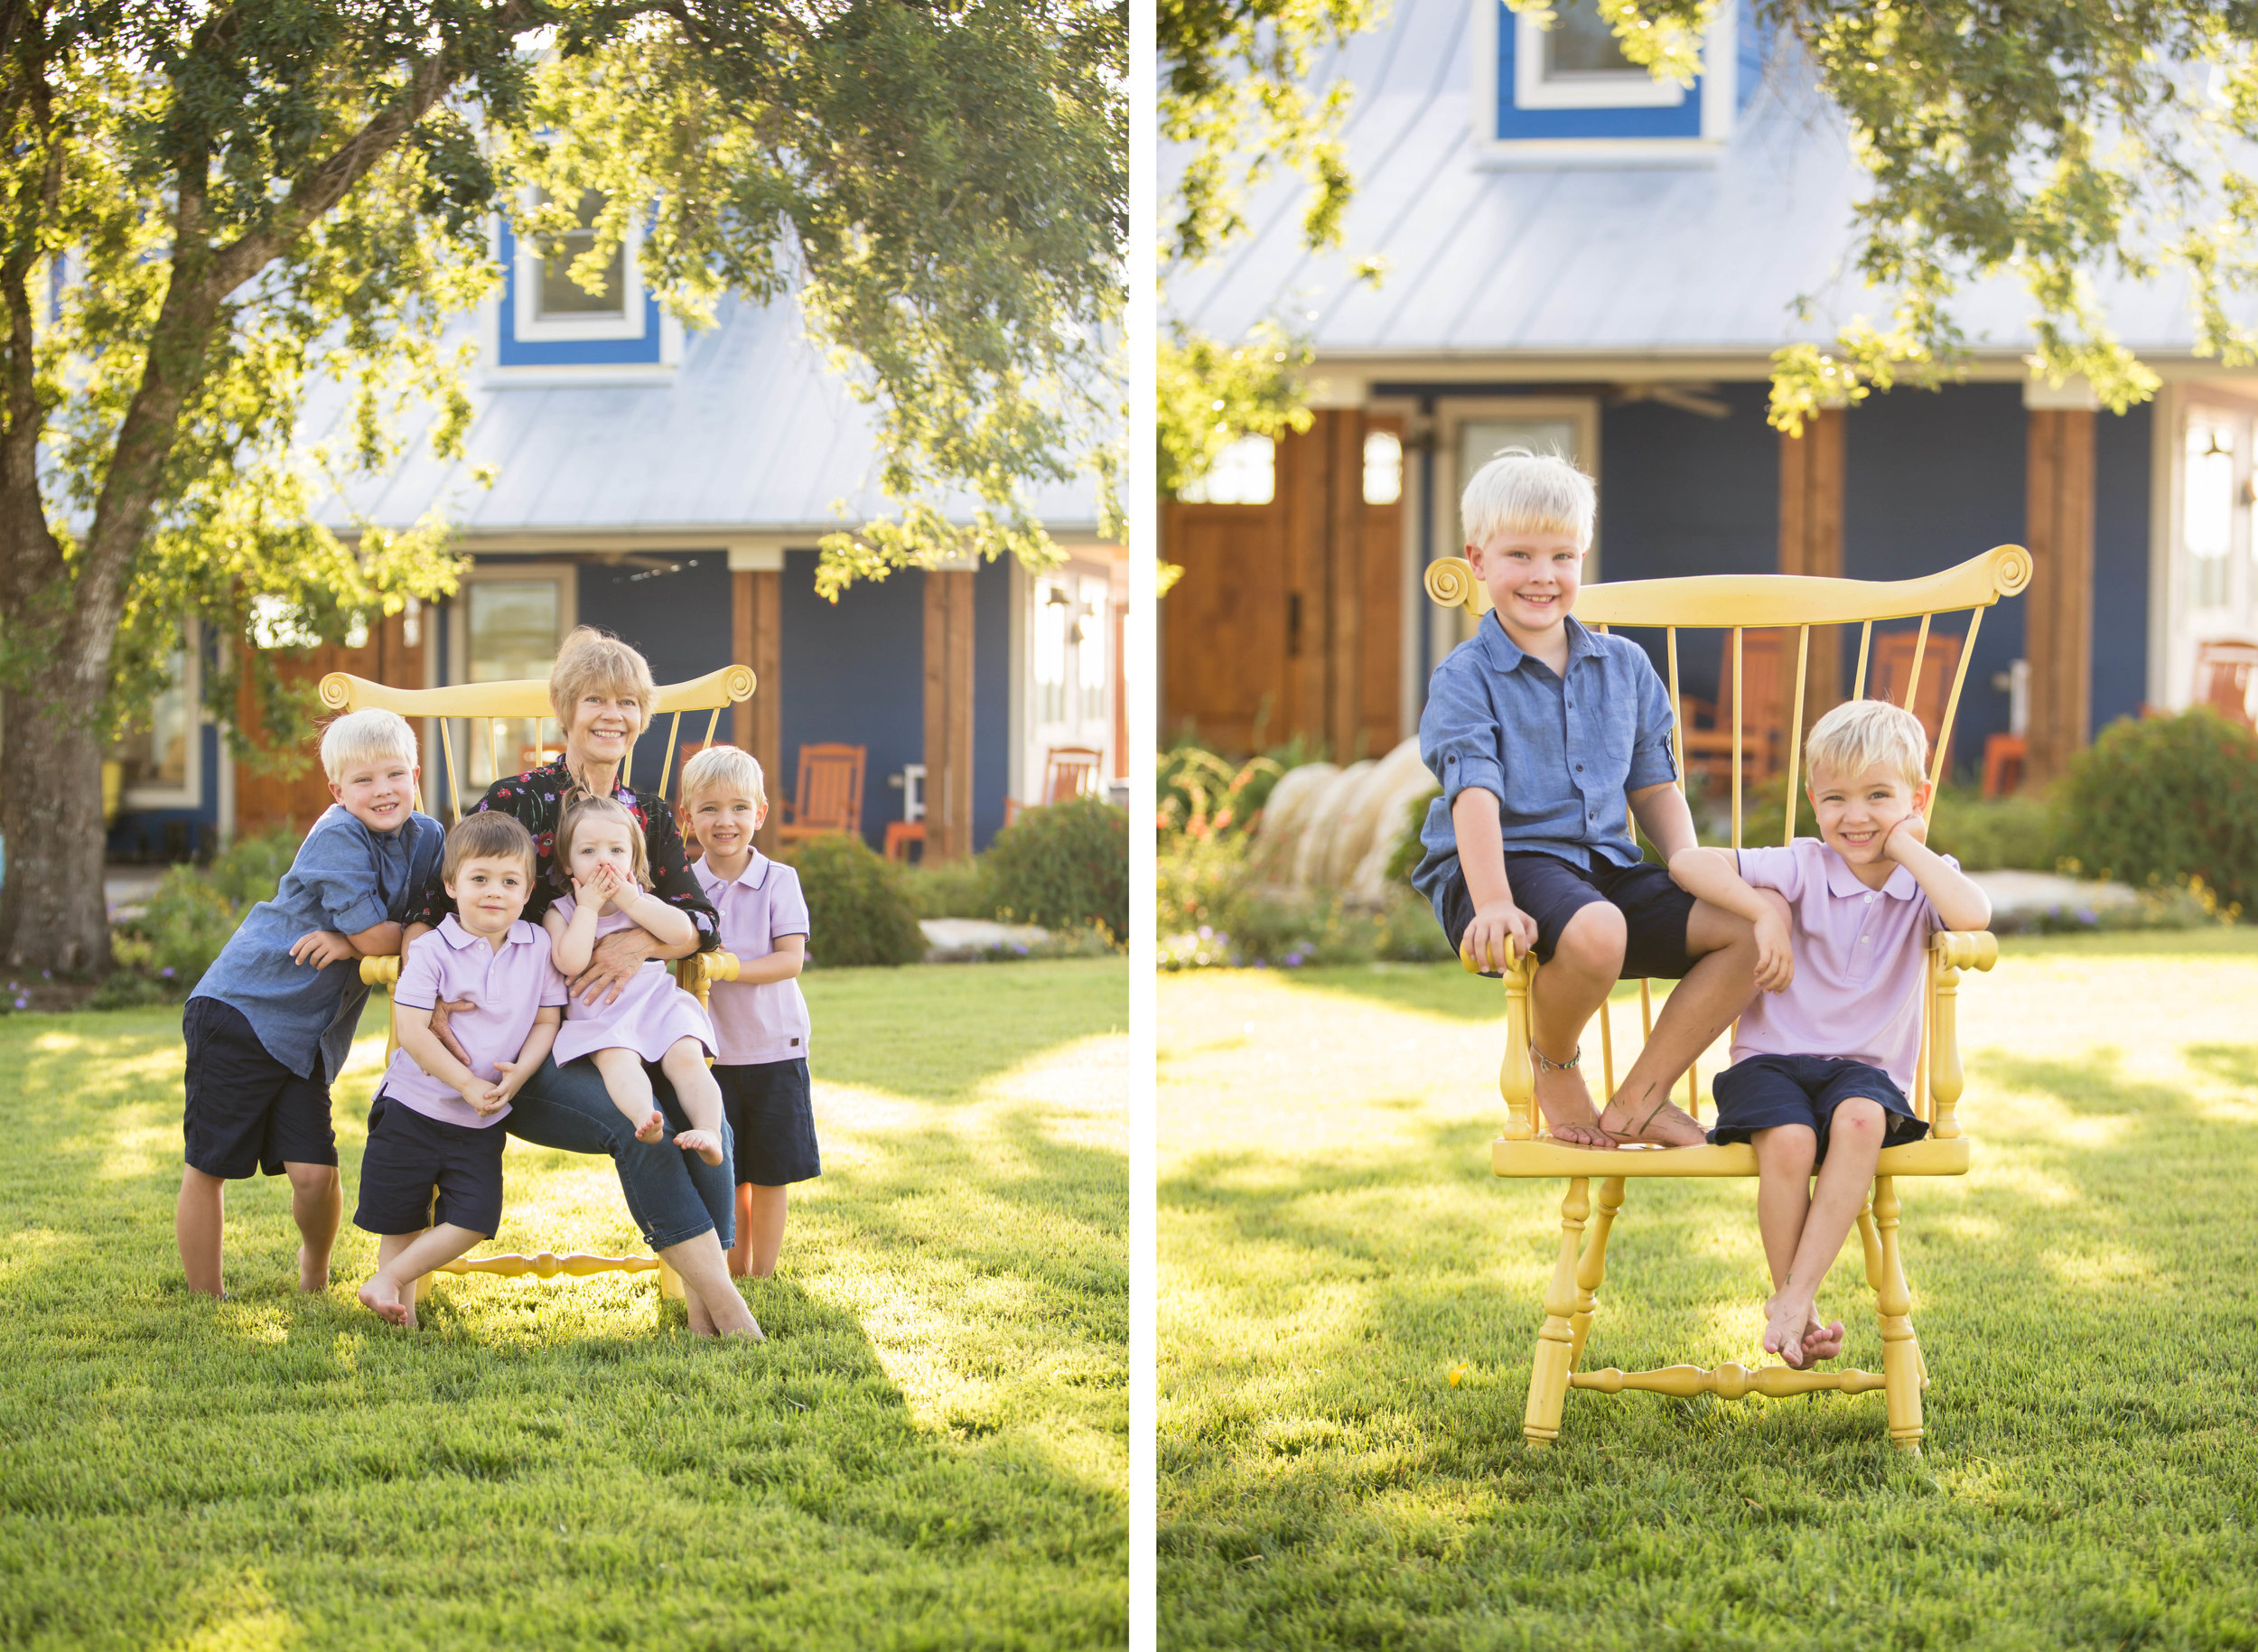 Marble_Falls_Family_Photographer_Farm_Jenna_Petty_09.jpg